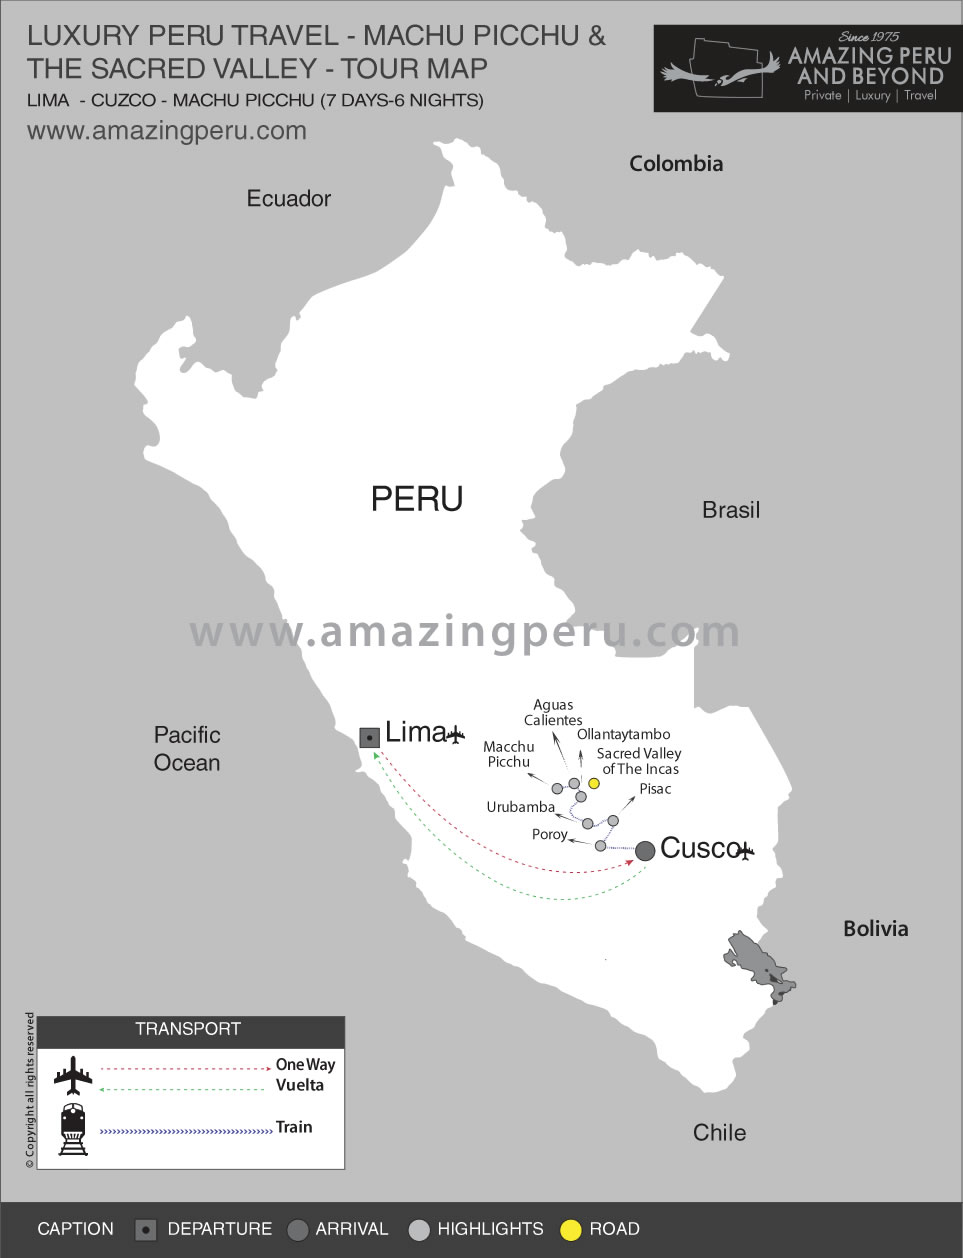 Luxury Peru Tour 5 - 7 days / 6 nights.